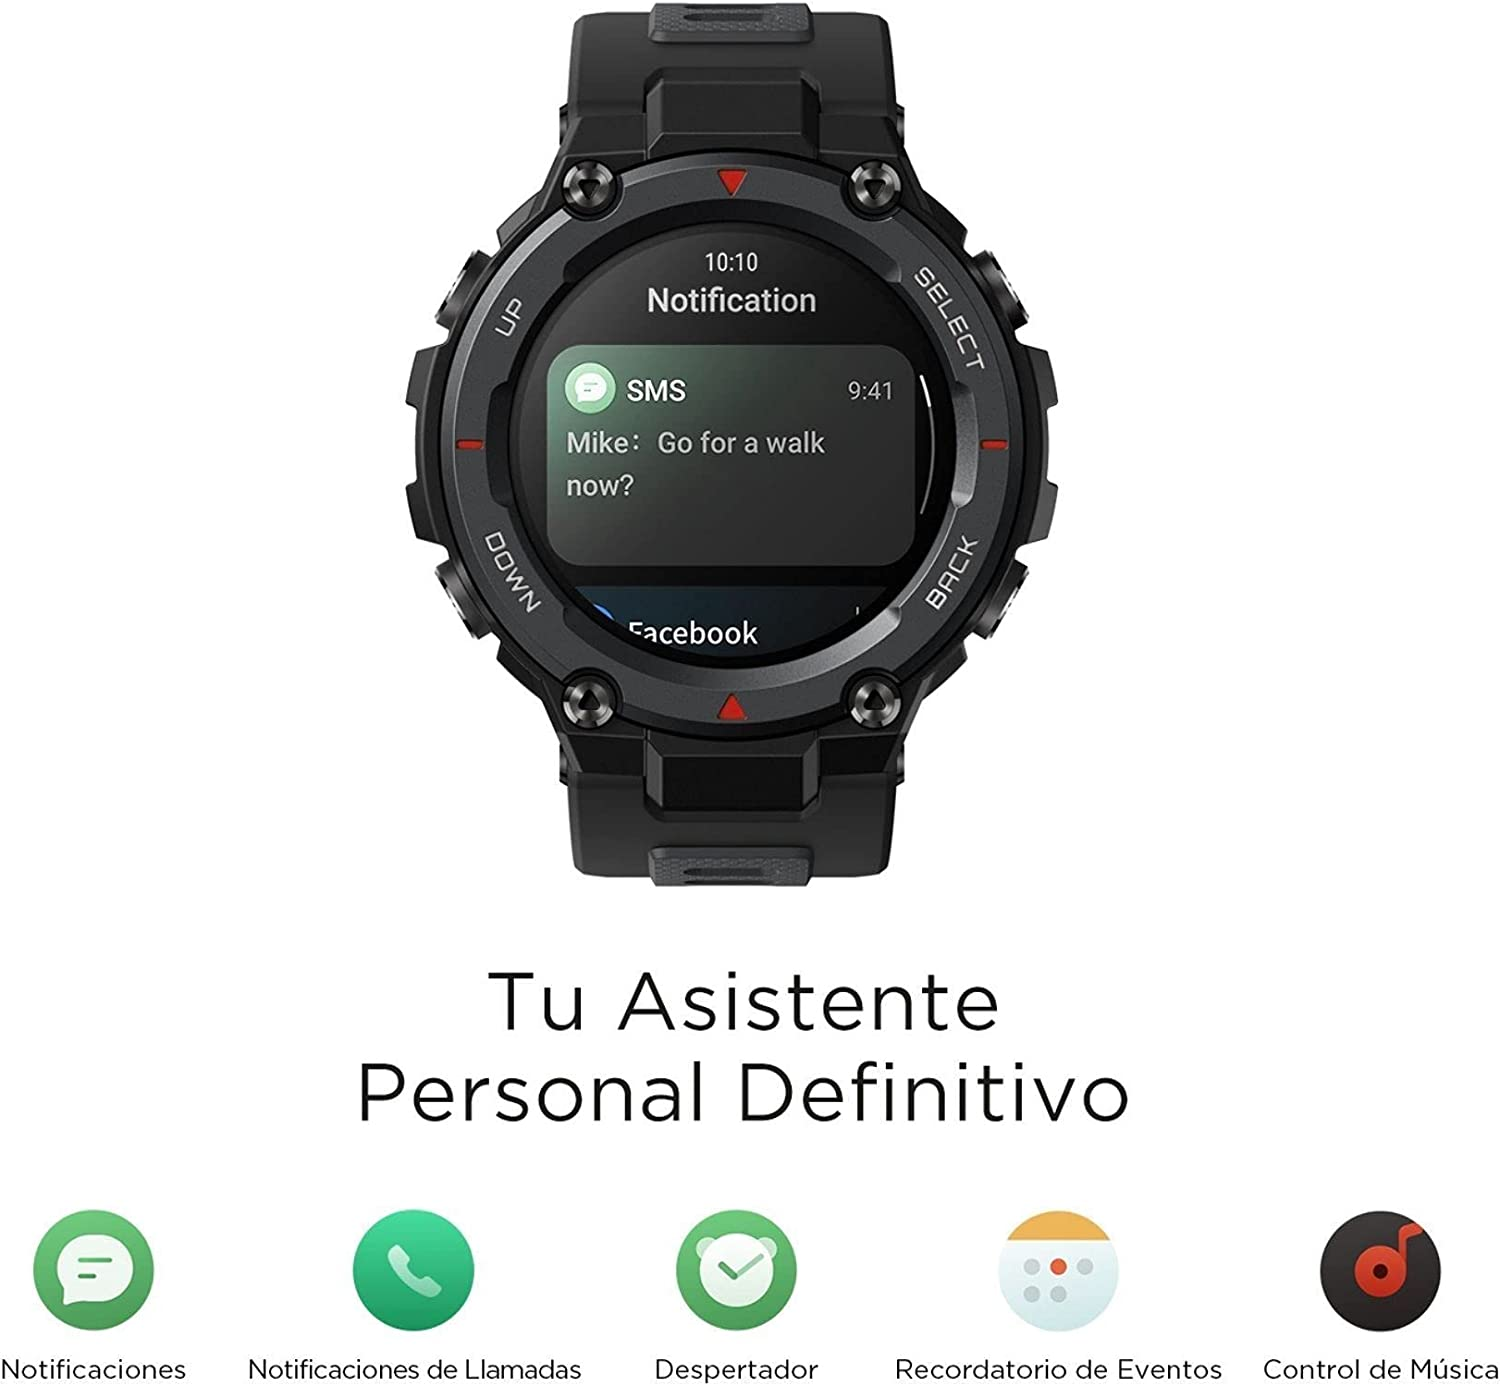 Buy Amazfit T-Rex Pro Smartwatch Fitness Watch with Built-in GPS, Military Standard Certified, 18 Day Battery Life, SpO2, Heart Rate Monitor, 100+ Sports Modes, 10 ATM Waterproof, Music Control, Black Online in